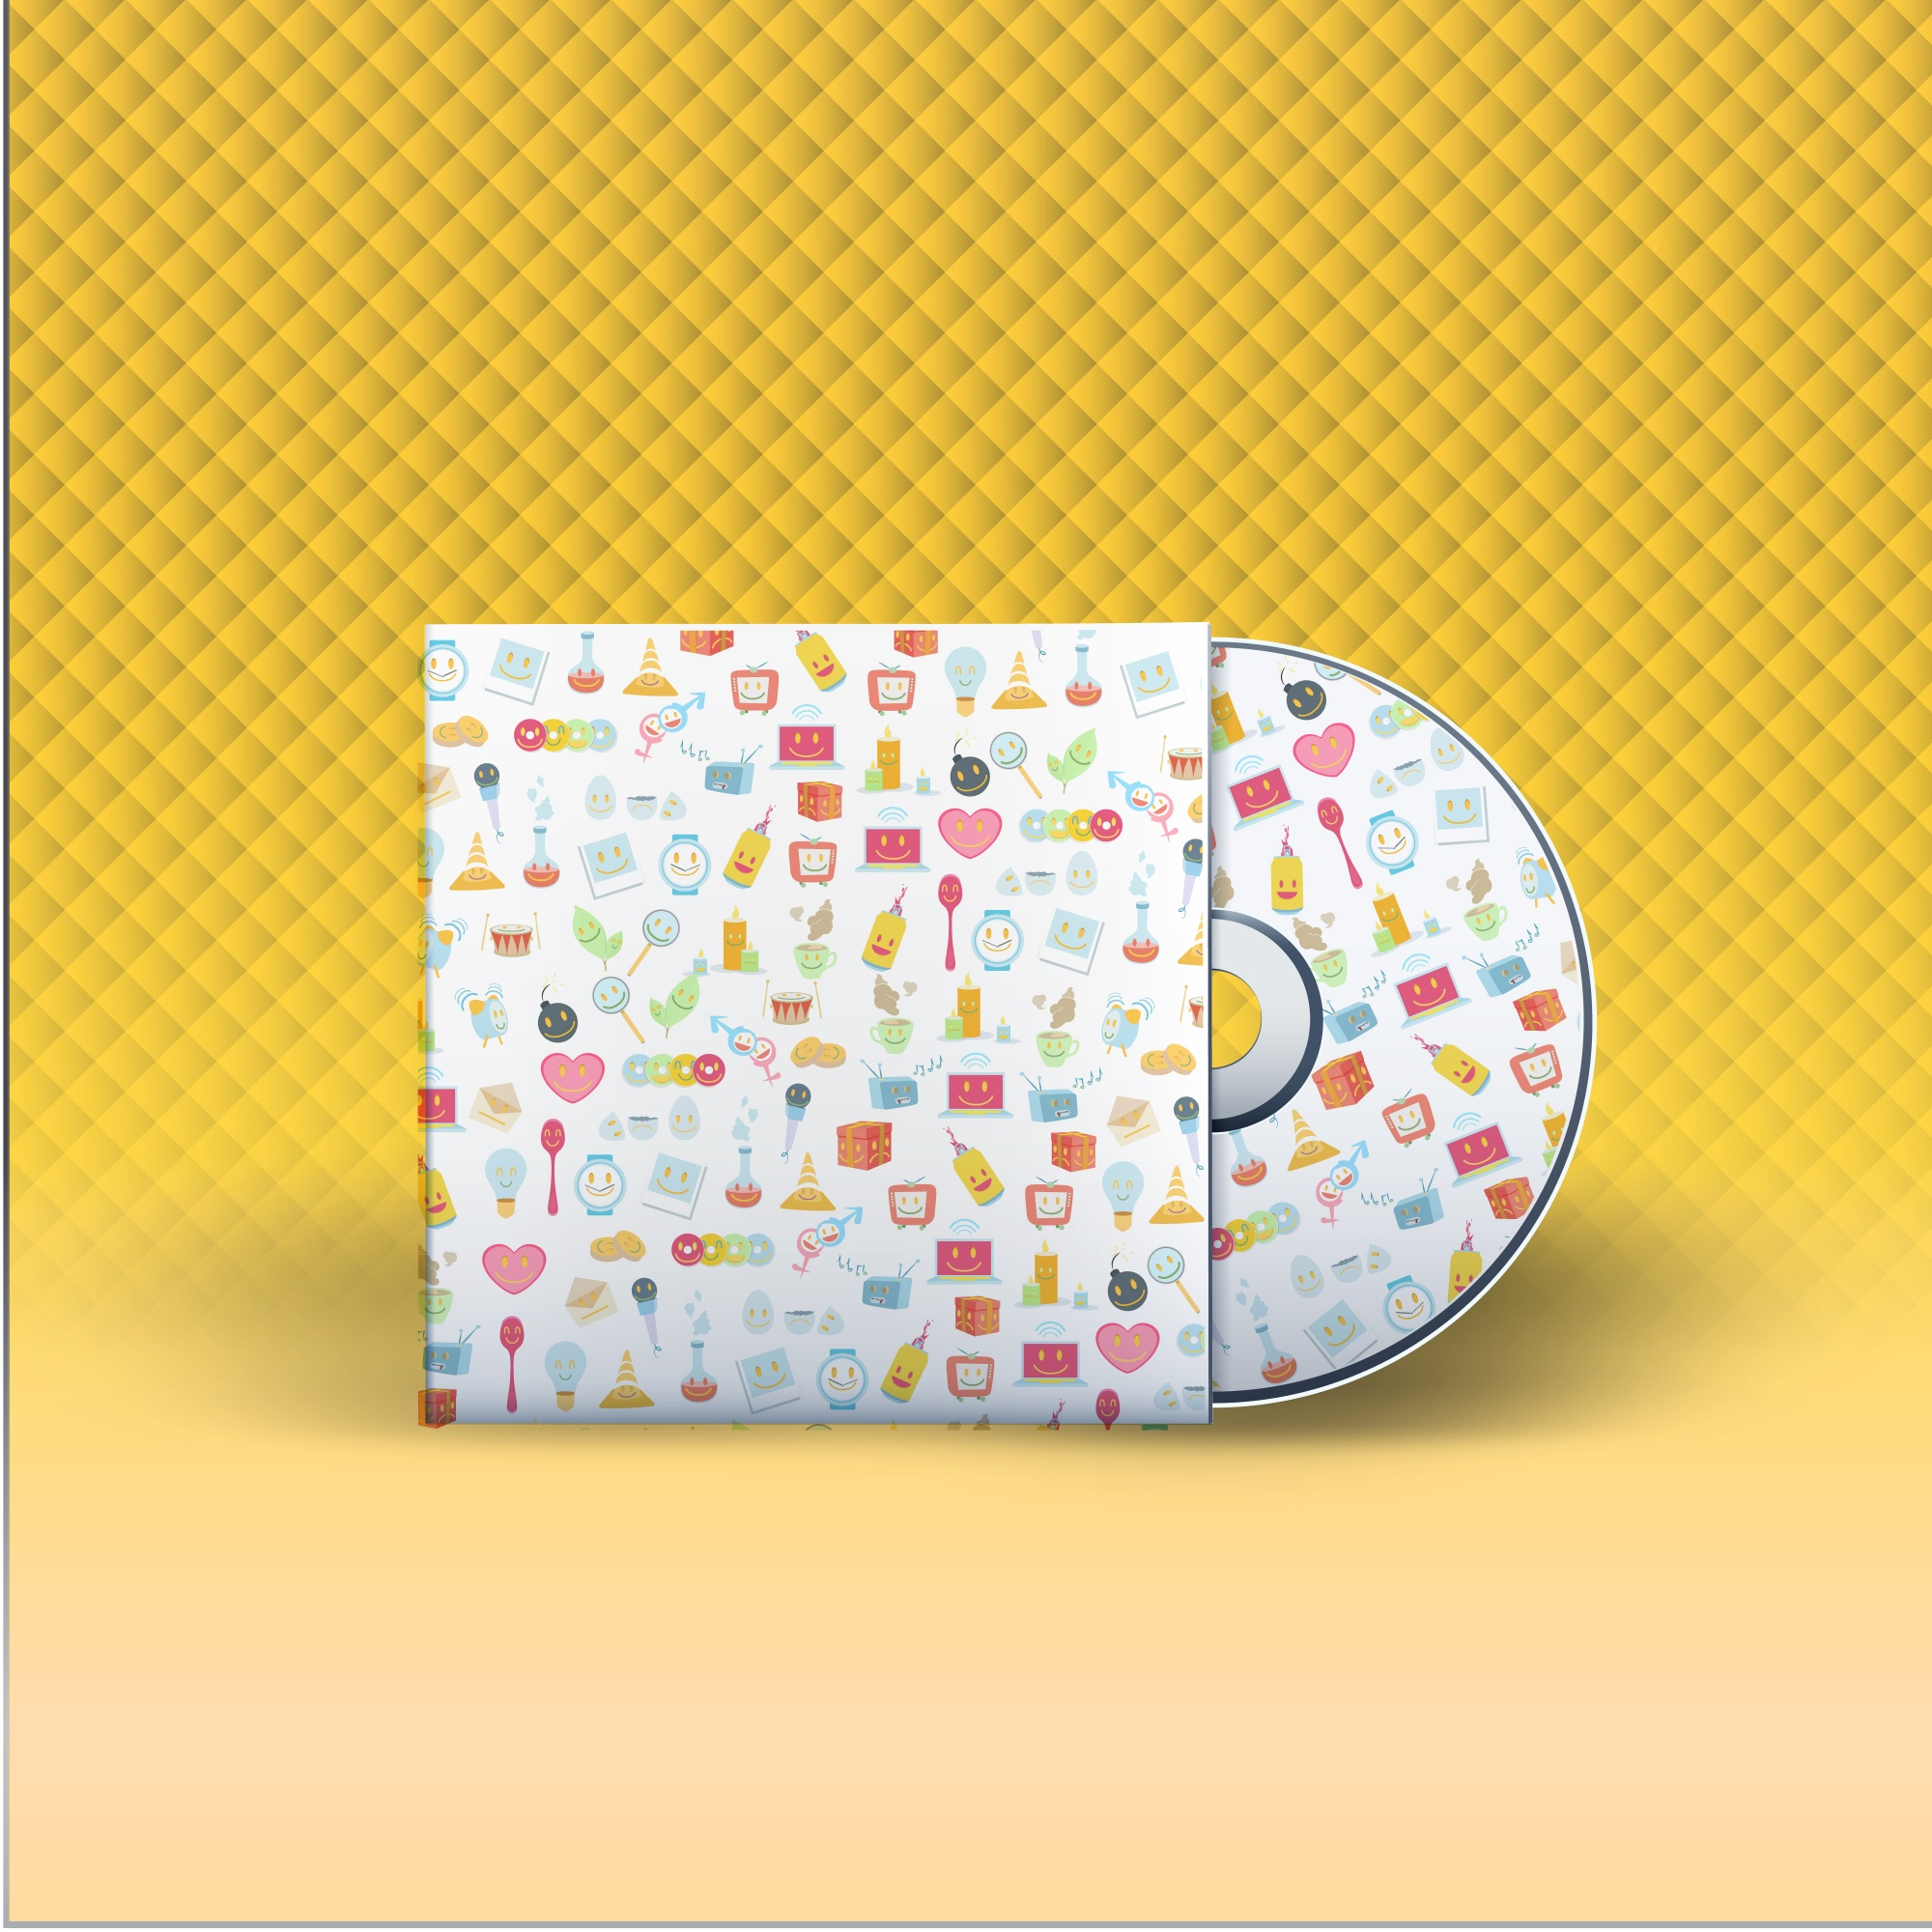 Music background art business compact